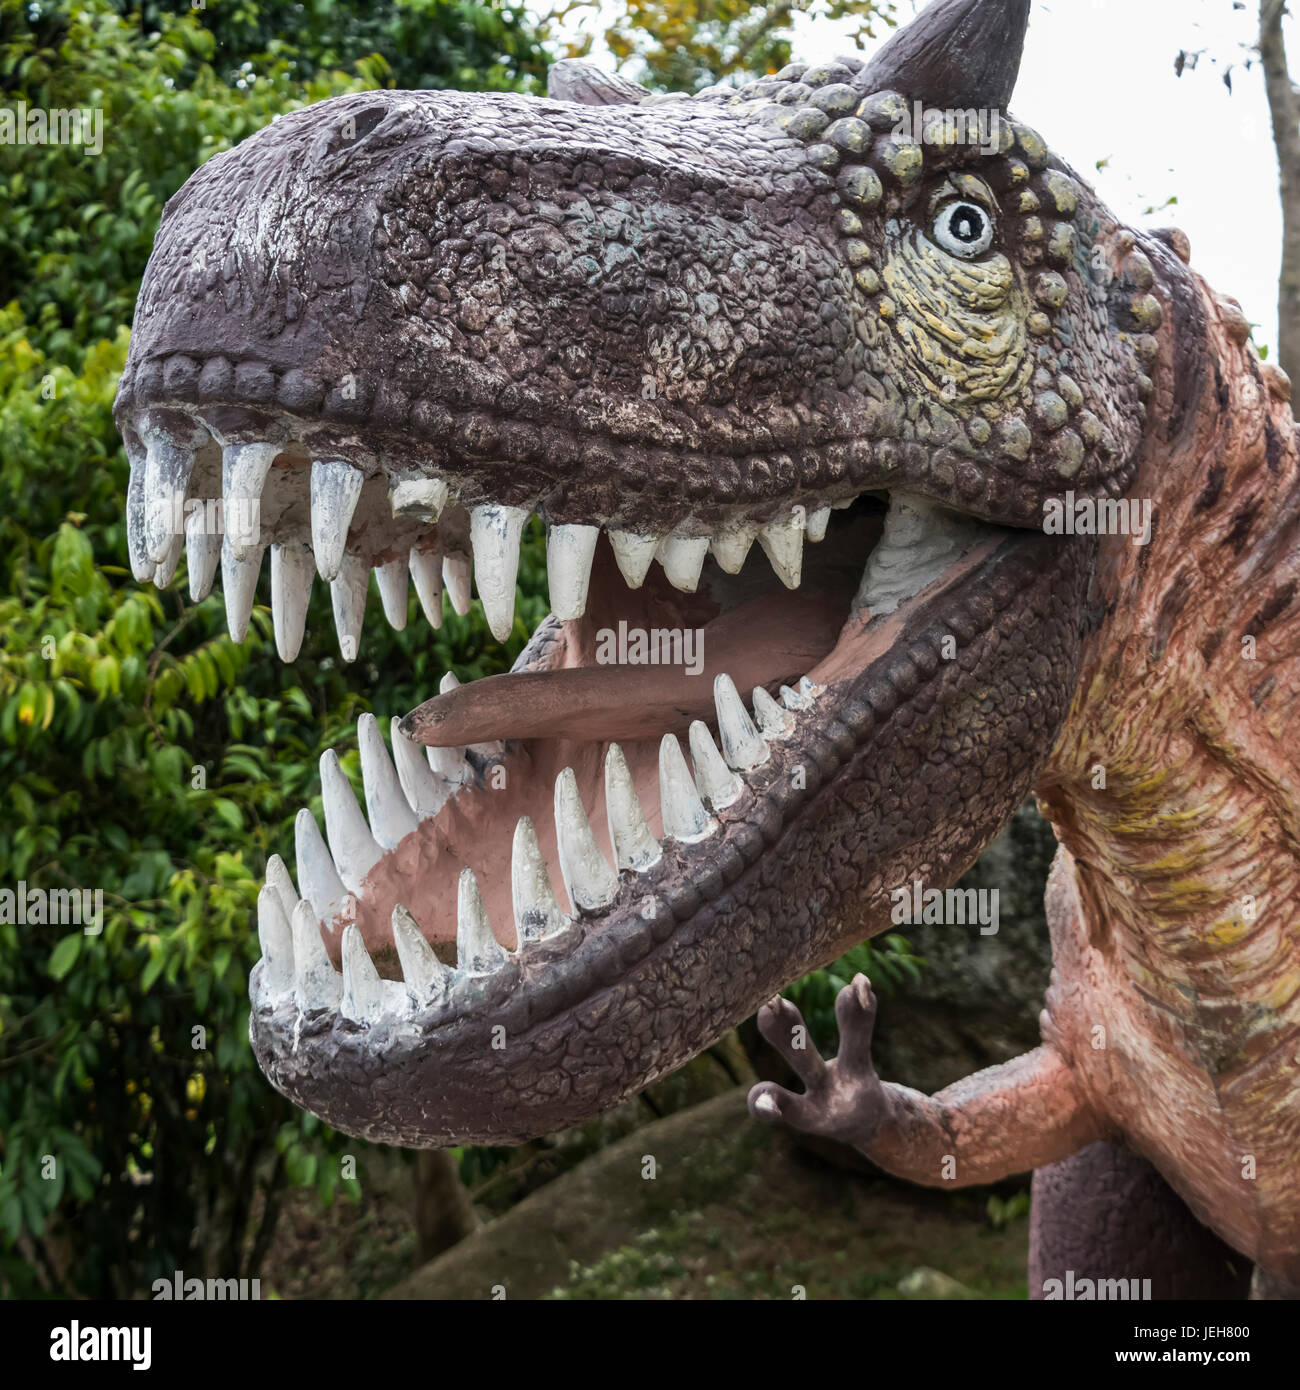 Sculpture of a dinosaur with a wide open mouth showing it's